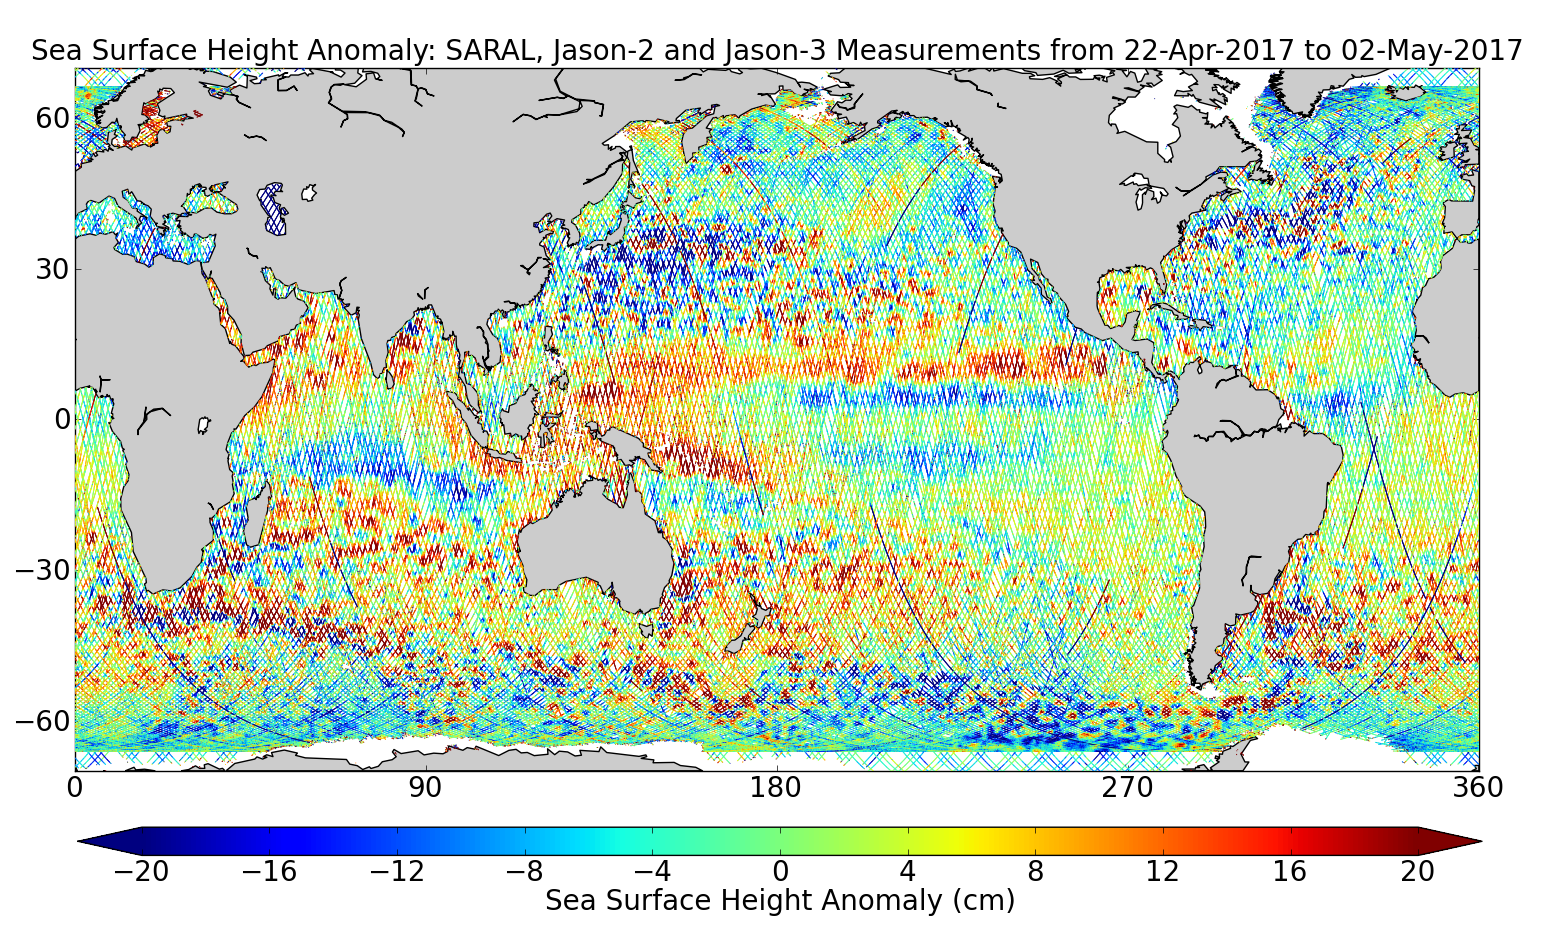 Sea Surface Height Anomaly: SARAL, Jason-2 and Jason-3 Measurements from 22-Apr-2017 to 02-May-2017